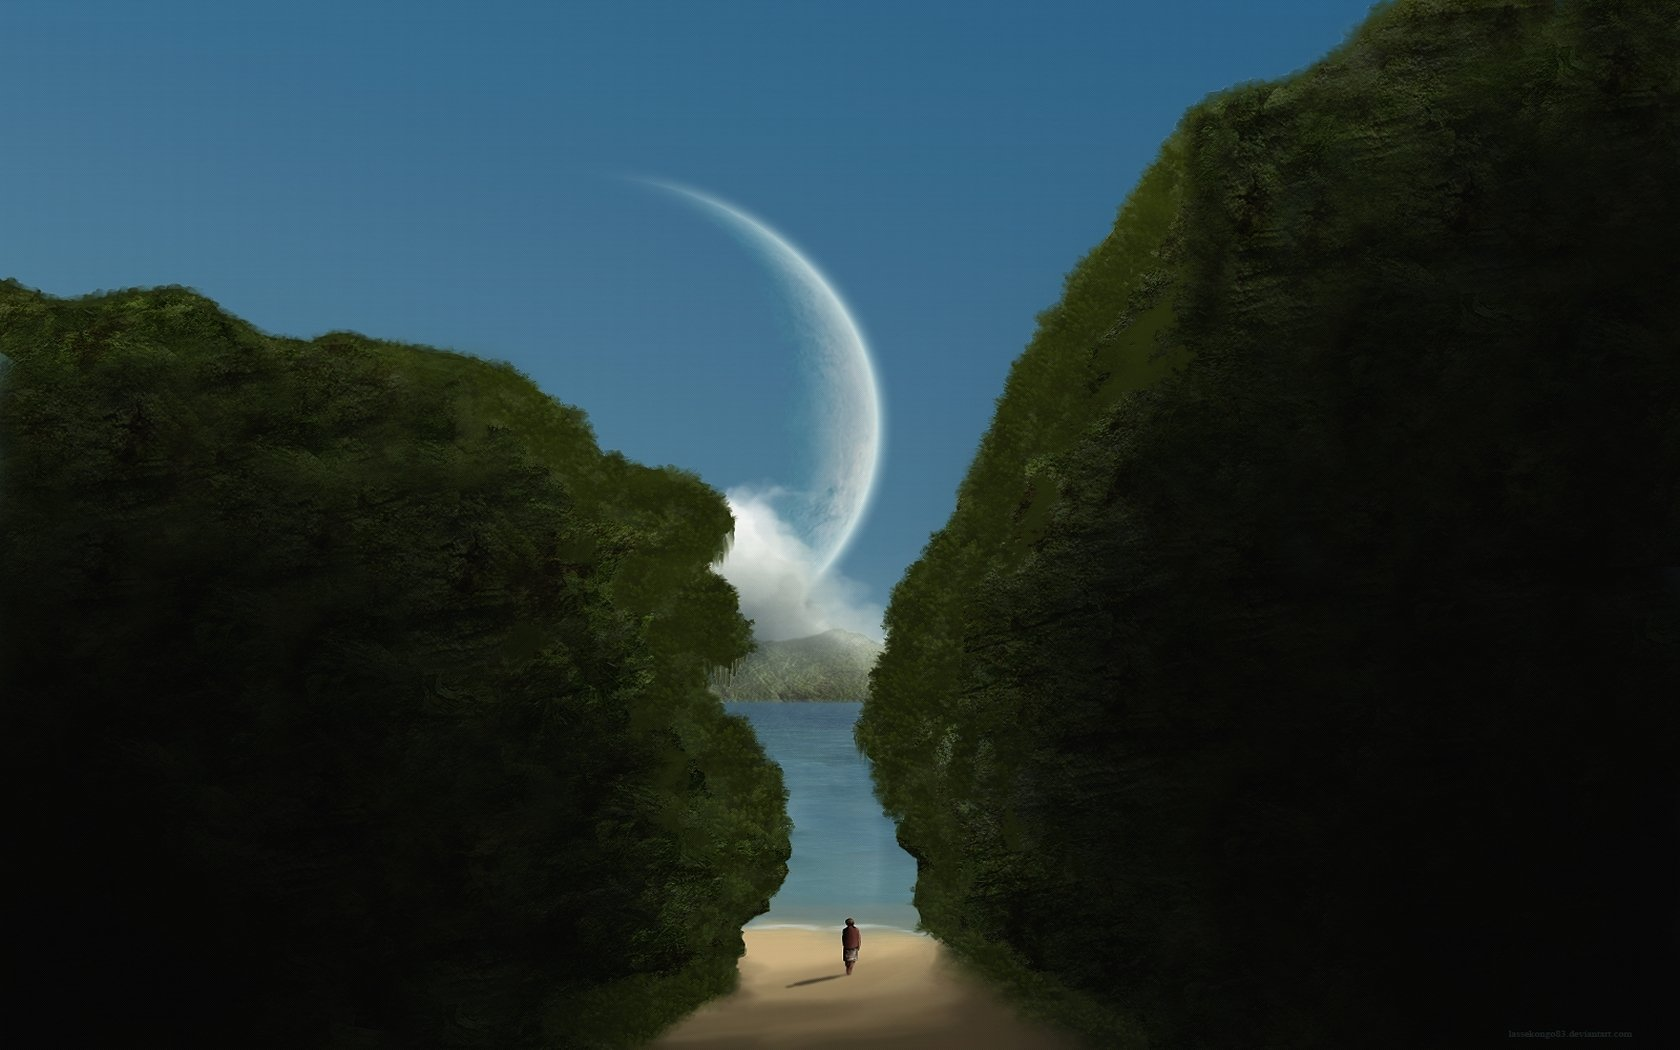 Artistic - Painting  Moon Water Artistic Wallpaper